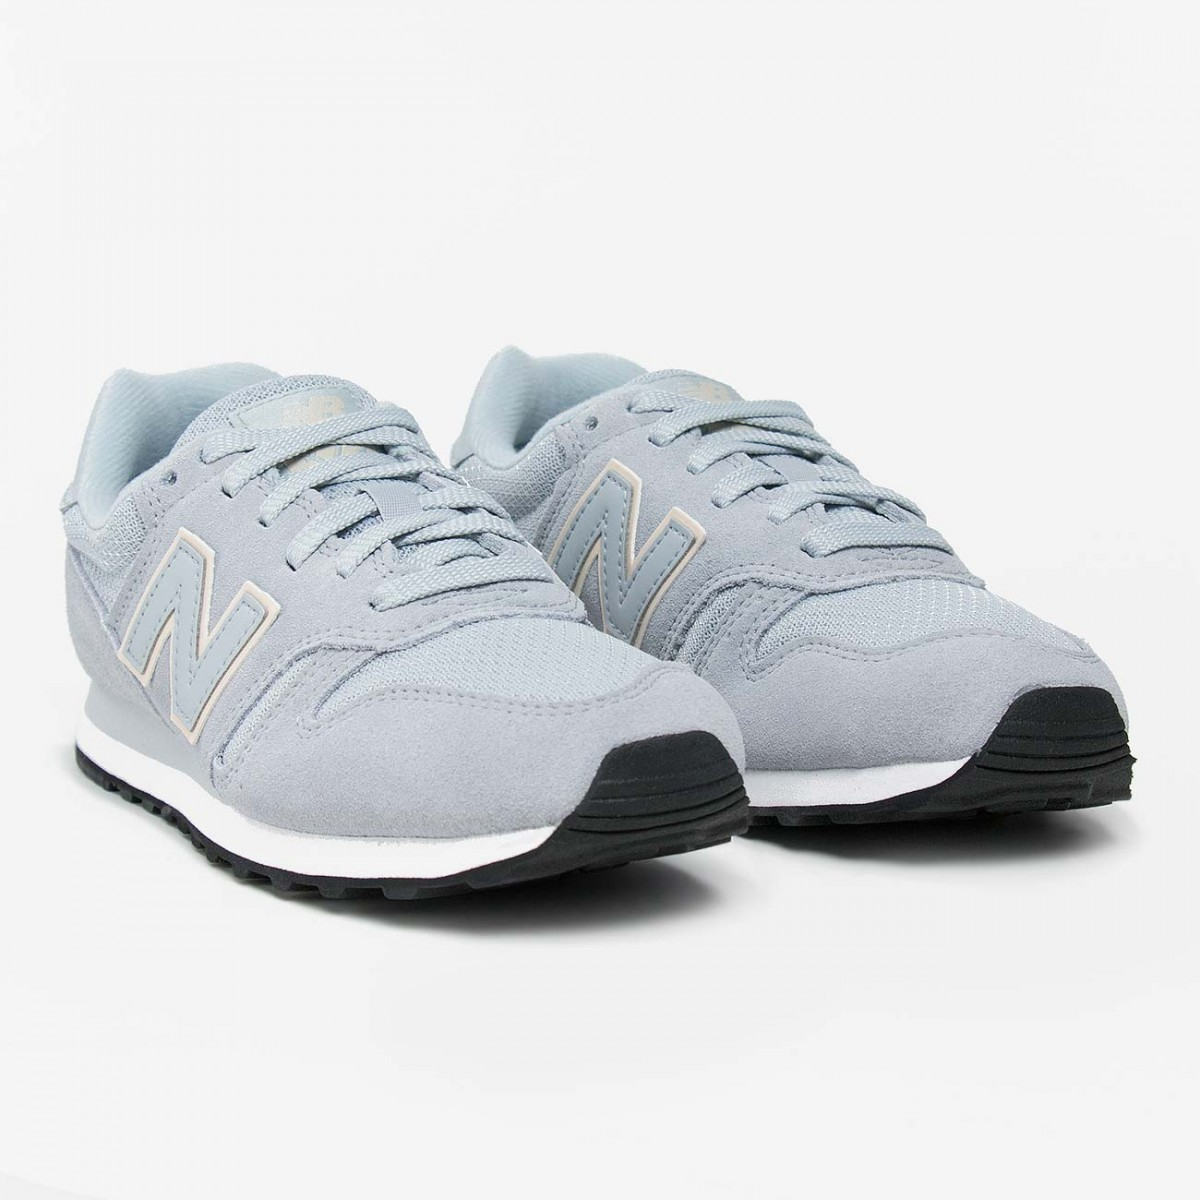 new balance mujer granate y gris